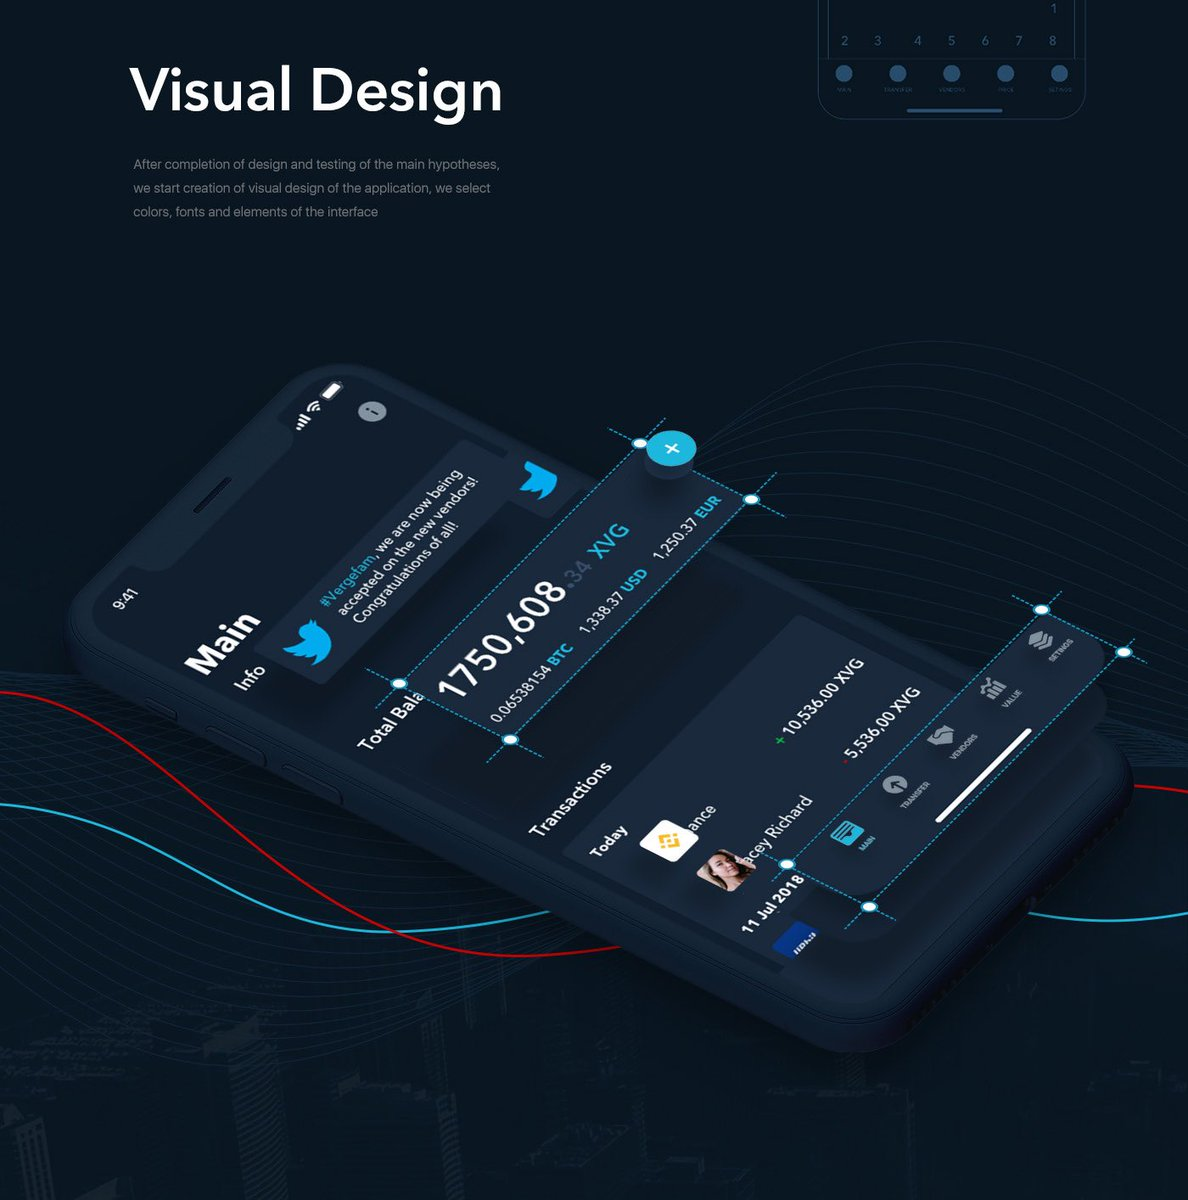 #Vergefam is awesome! Have you seen these mockups? Made by @grevcev_vadim   Awesome UX/UI designs for a #Verge iOS wallet!  $xvg @vergecurrency #crypto #community<br>http://pic.twitter.com/YnlaBBbrmJ